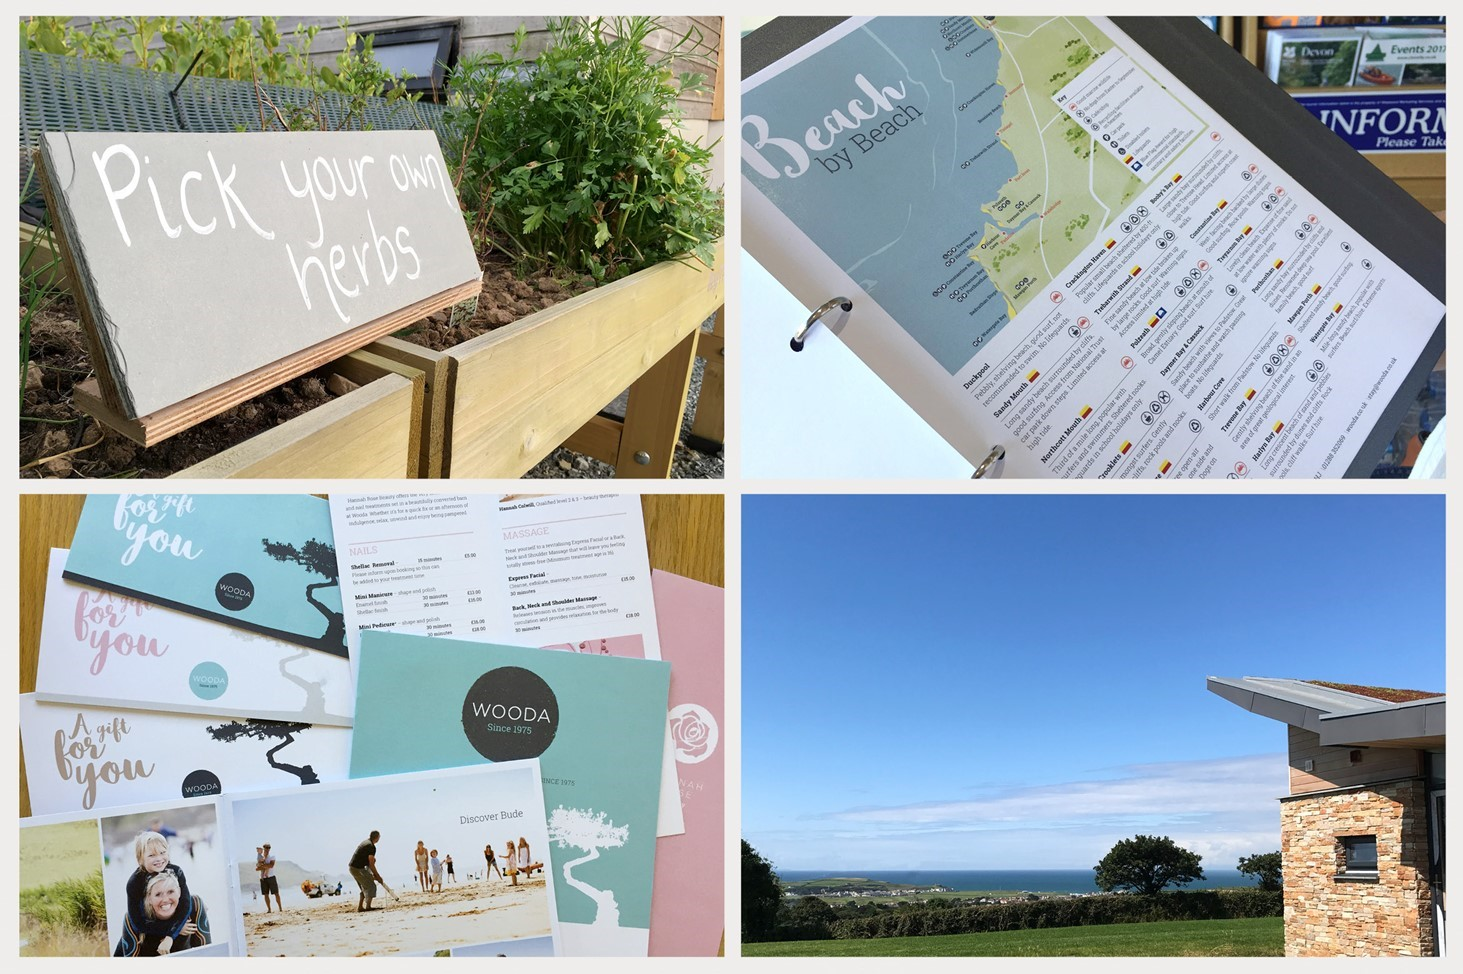 print, Wooda, brand, tree, walking, family, Cornwall, booklet, leaflet, signage, Design79, holiday, sign, map,